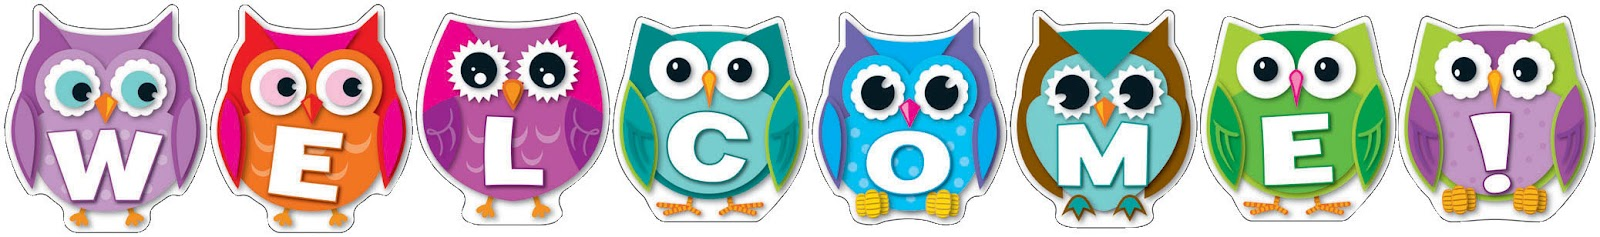 Welcome Owl Clipart-Welcome owl clipart-10